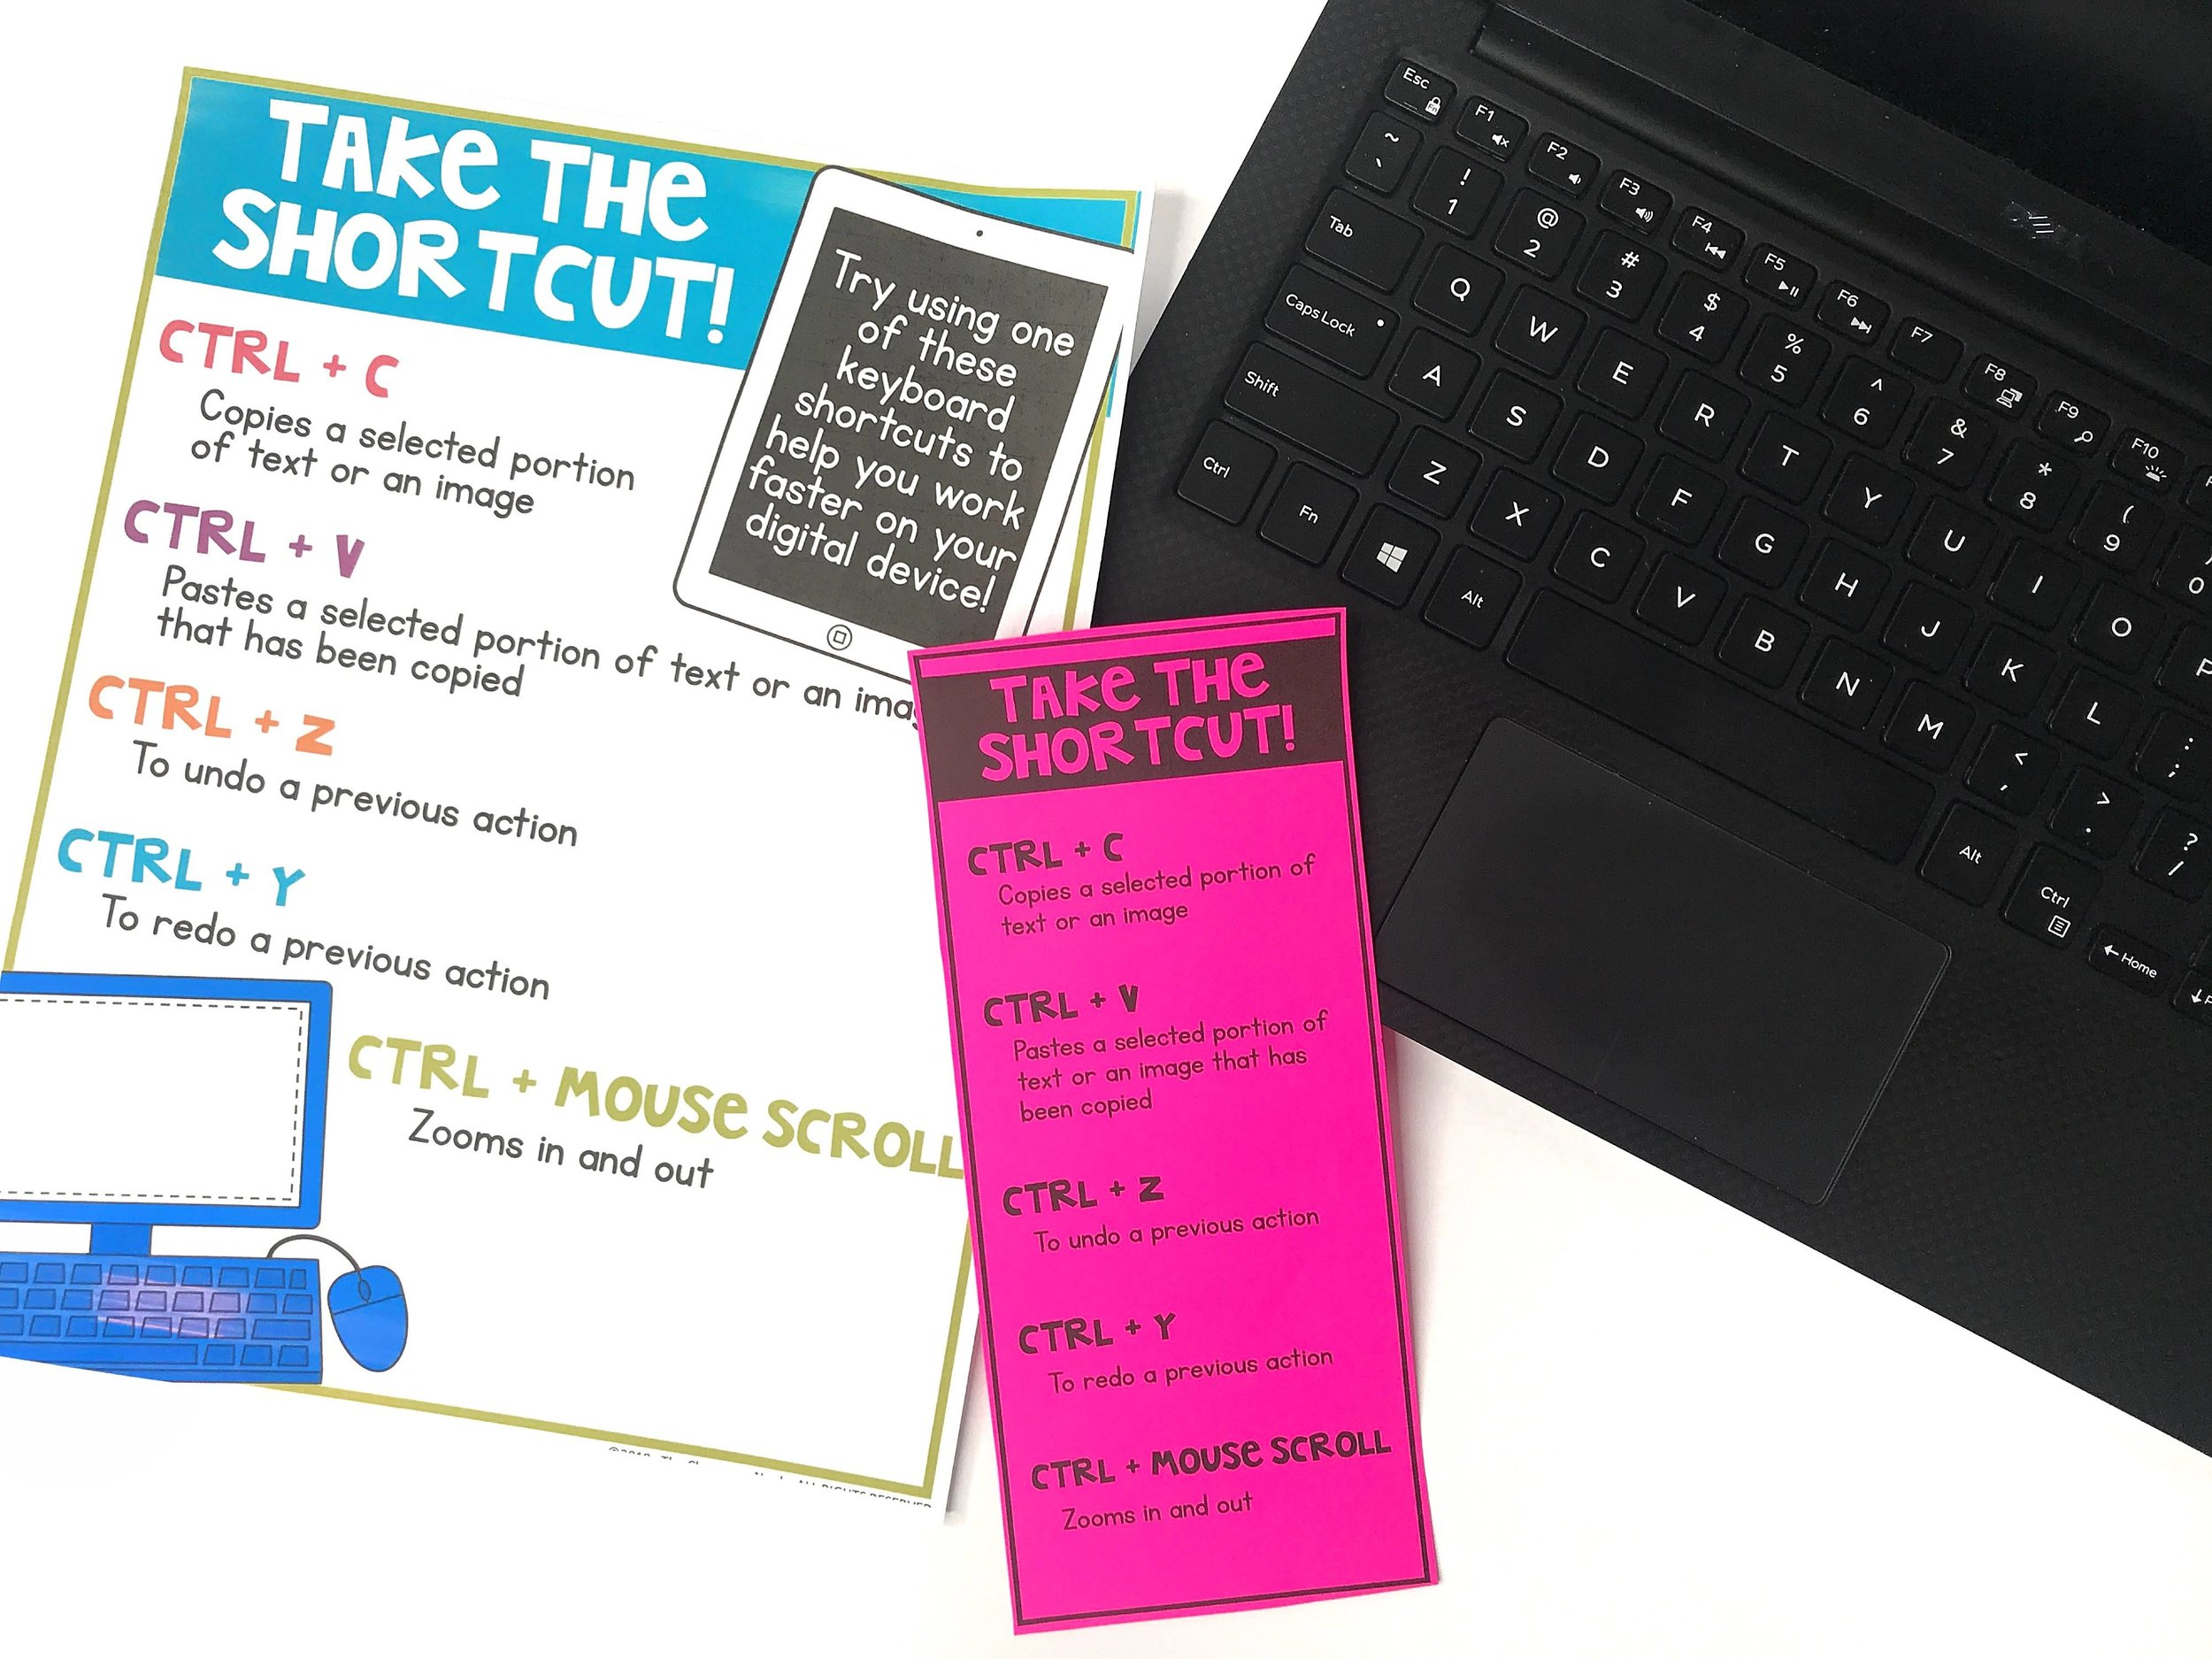 Teach students a few keyboard shortcuts ( like CTRL+Z to undo an action! ) to help students work faster and more efficient on their own. Post some common shortcuts in your classroom, or provide students with a quick cheat-sheet to help them memorize these helpful tips.